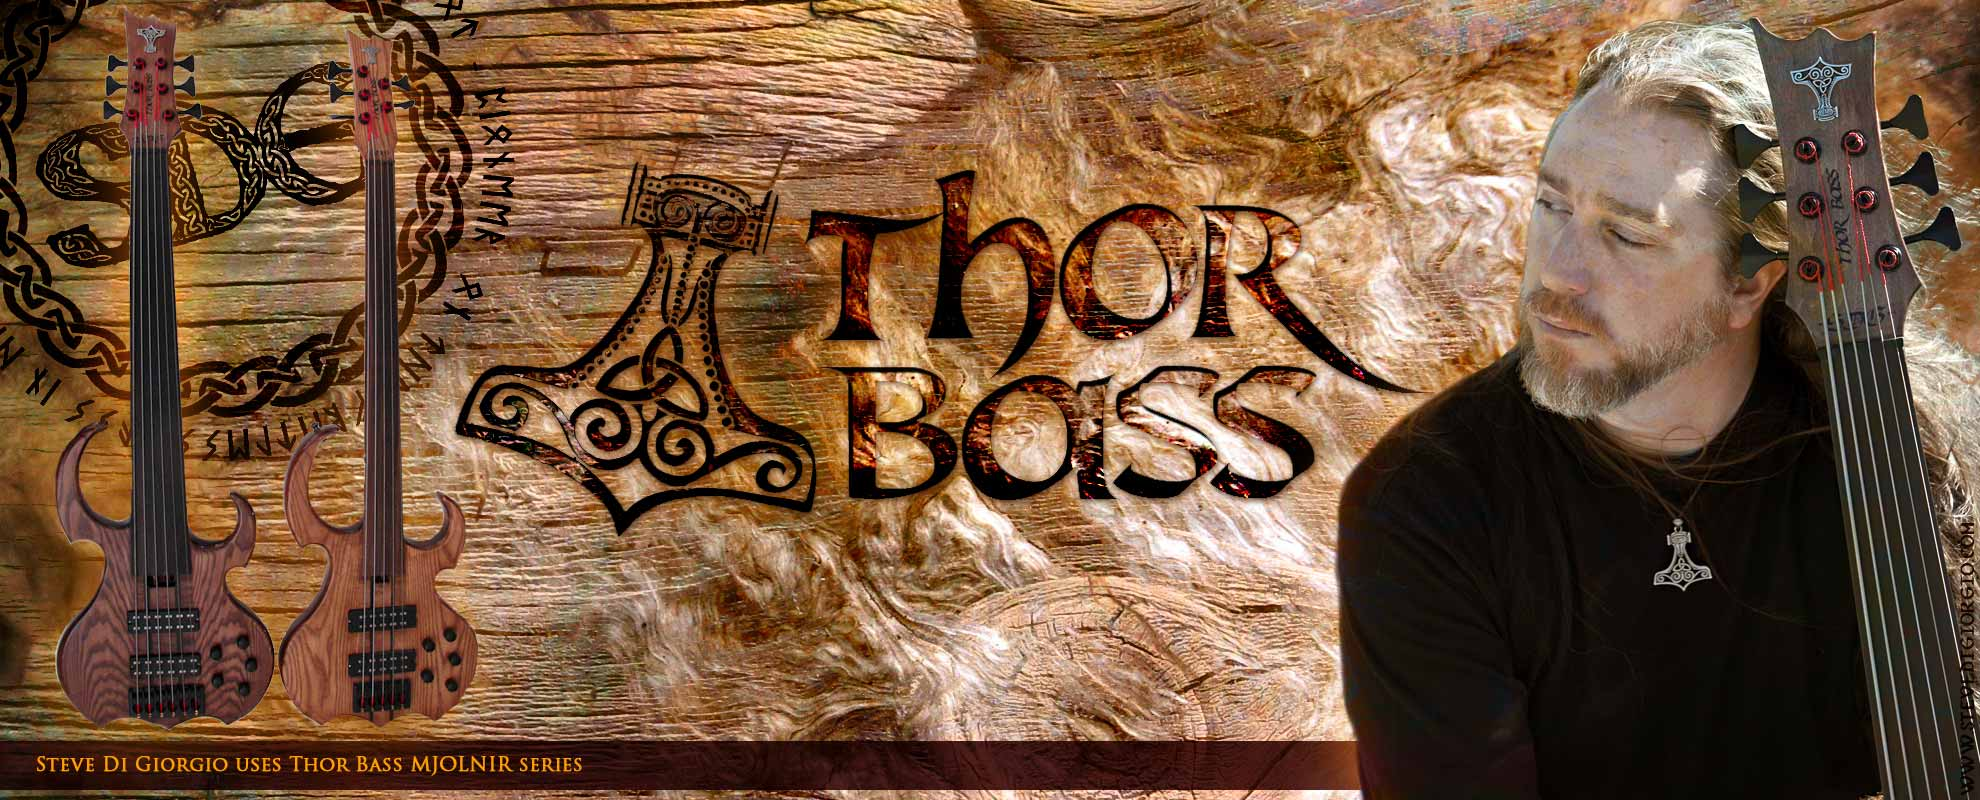 Thor Bass - handmade basses built by luthier Karl Thorkildsen